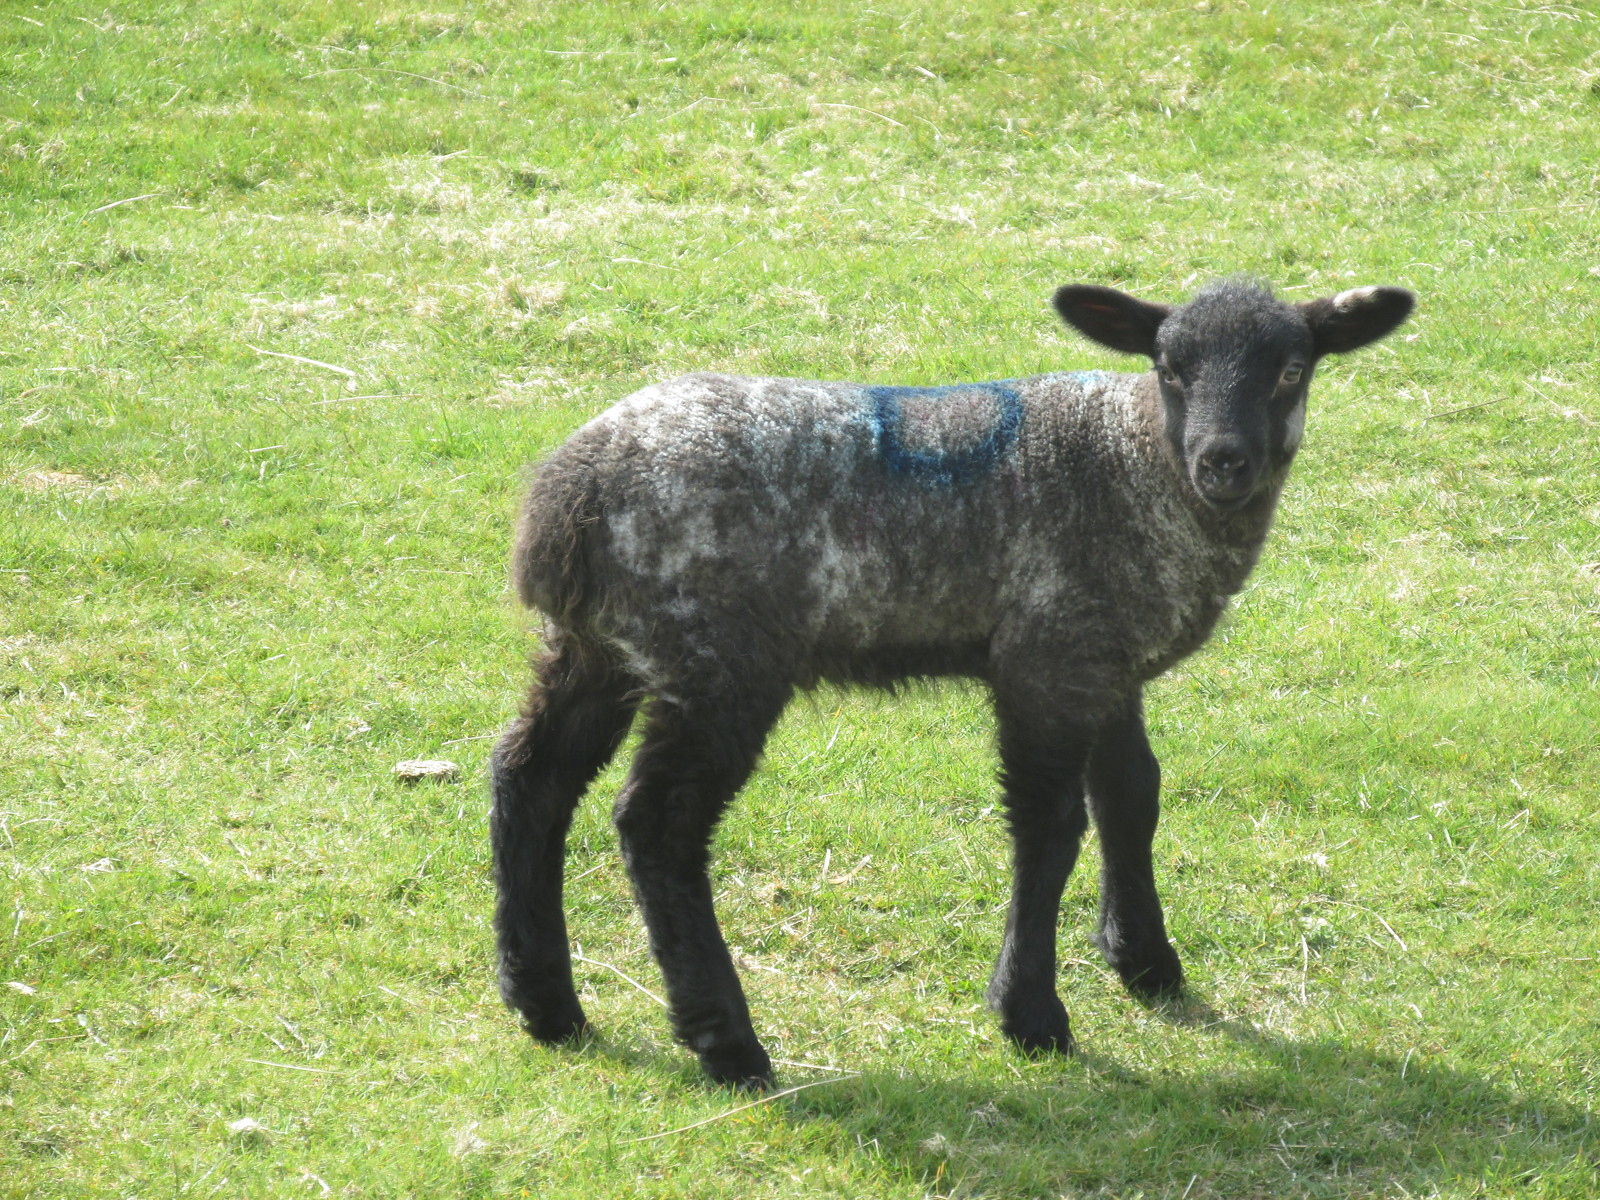 April 6, 2015: Glynde to Seaford Lamb on South Downs